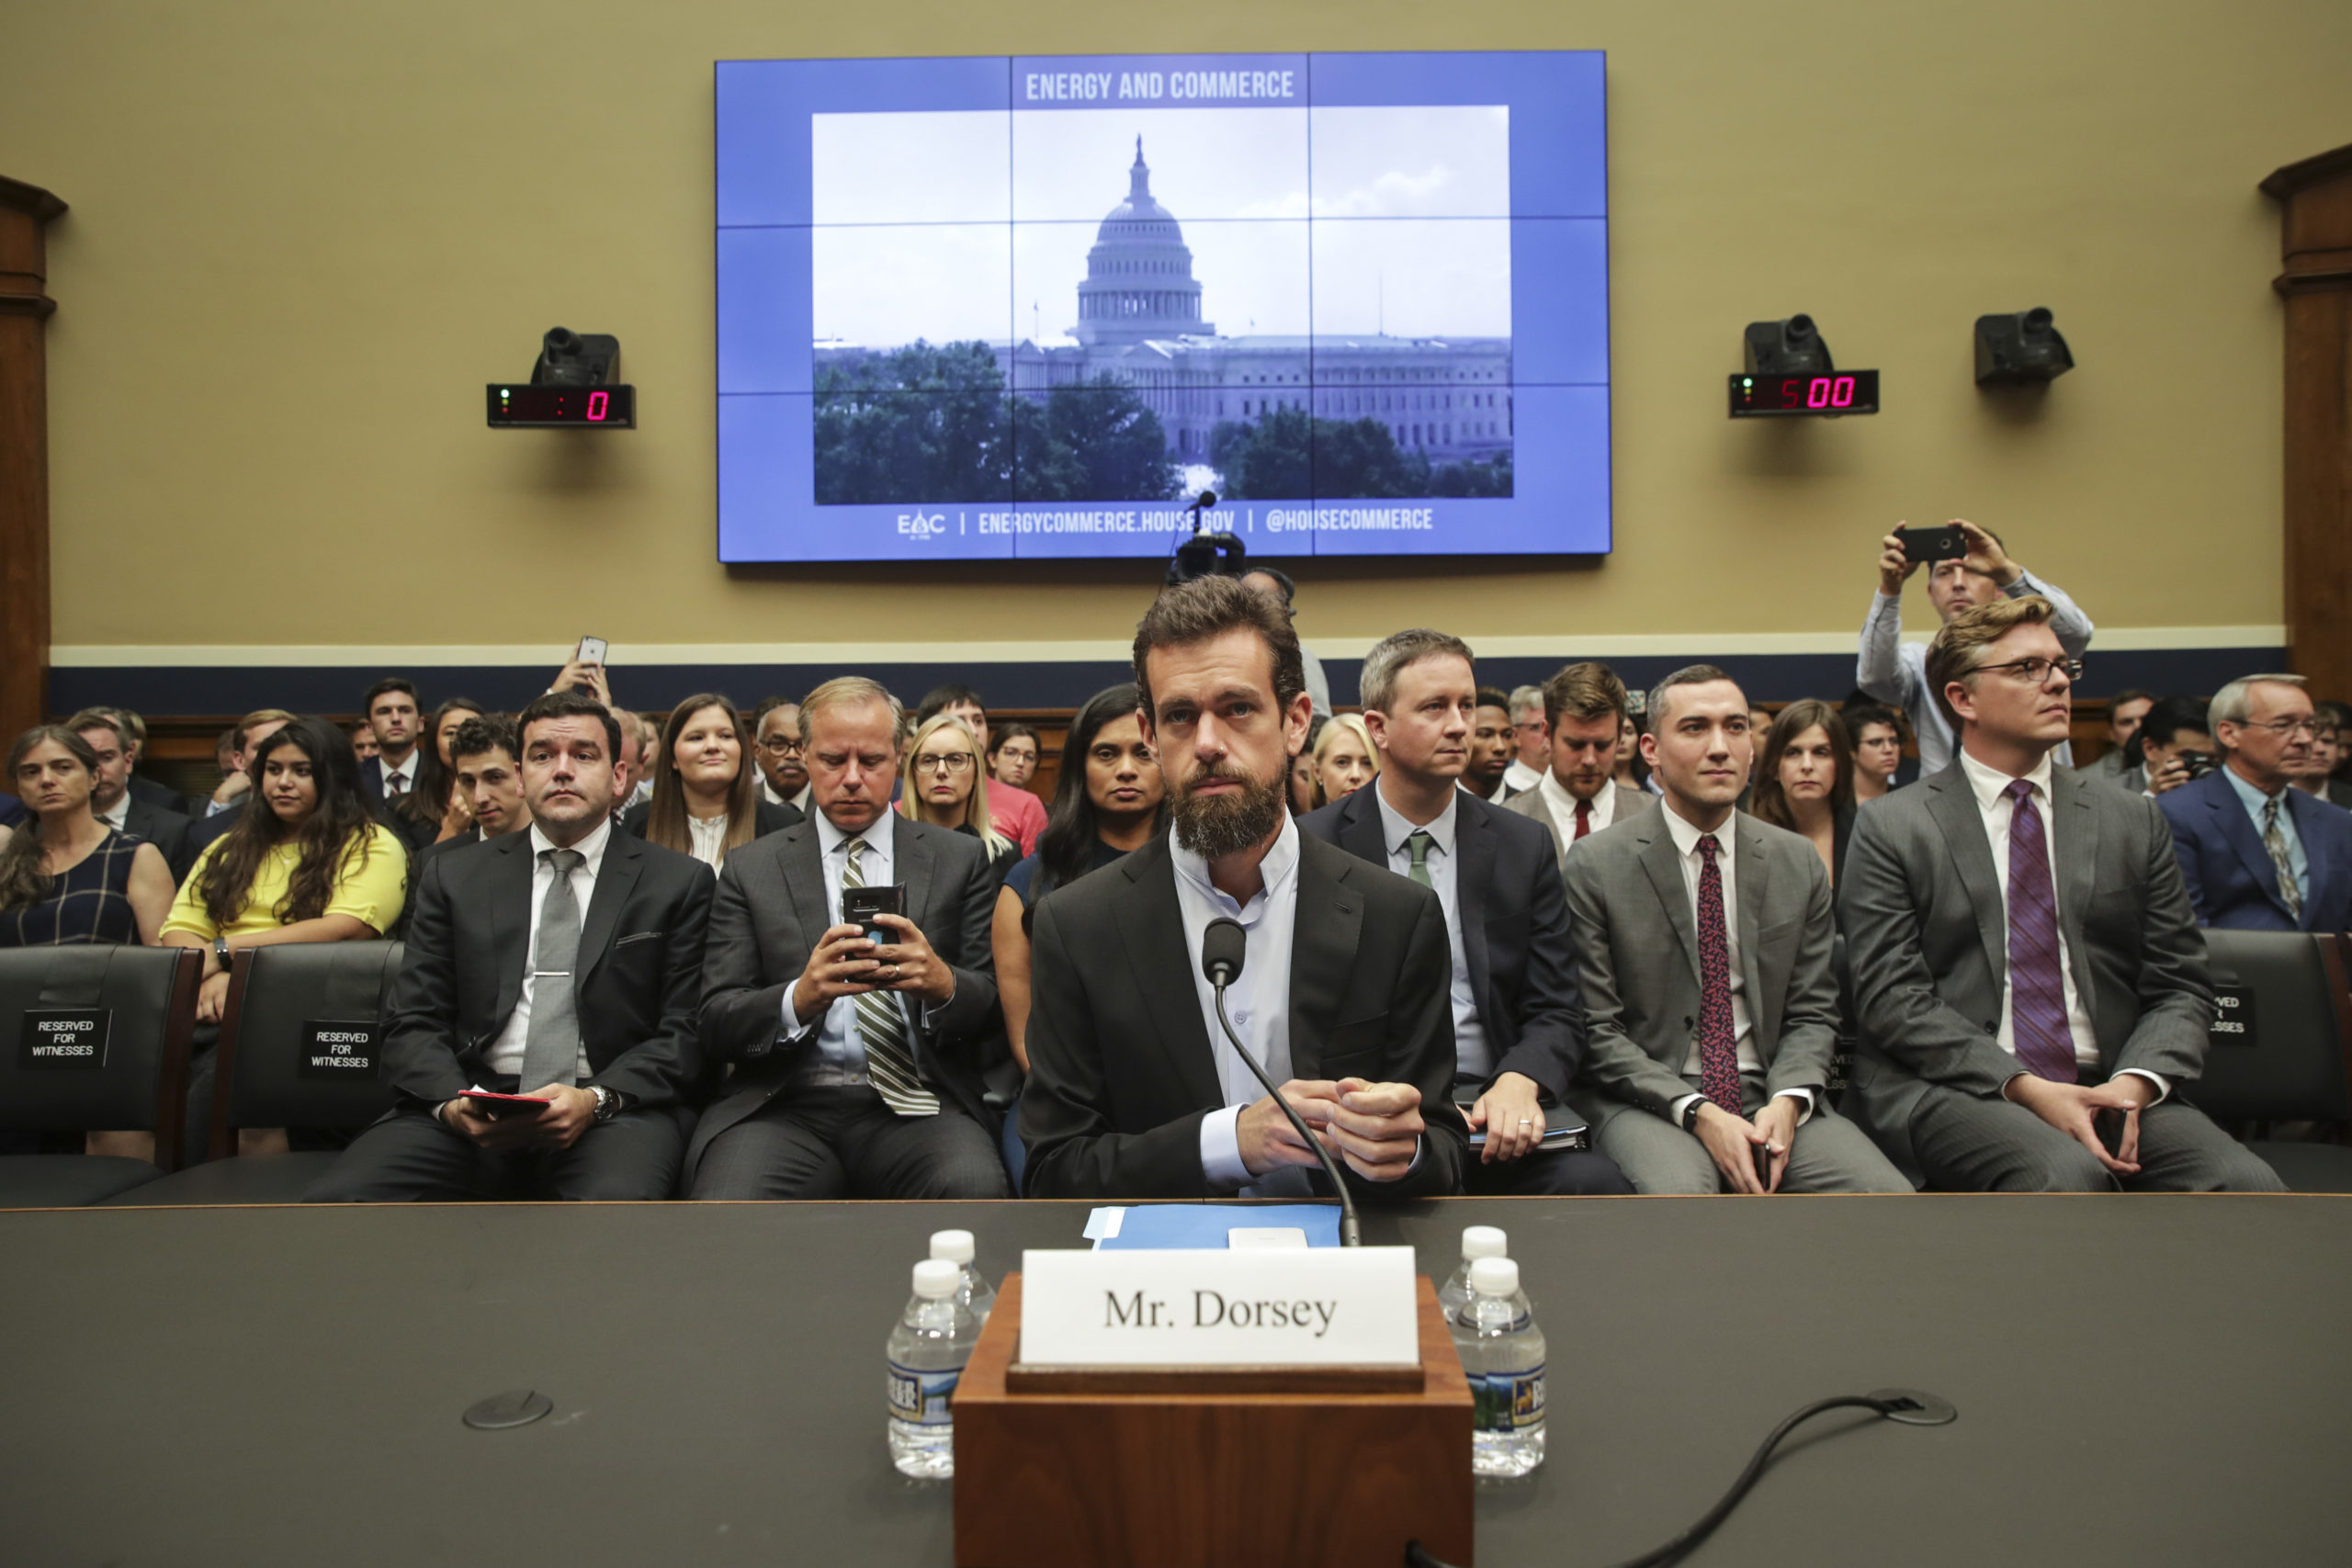 Twitter CEO Jack Dorsey testifies on Capitol Hill in 2018. (Drew Angerer/Getty Images)